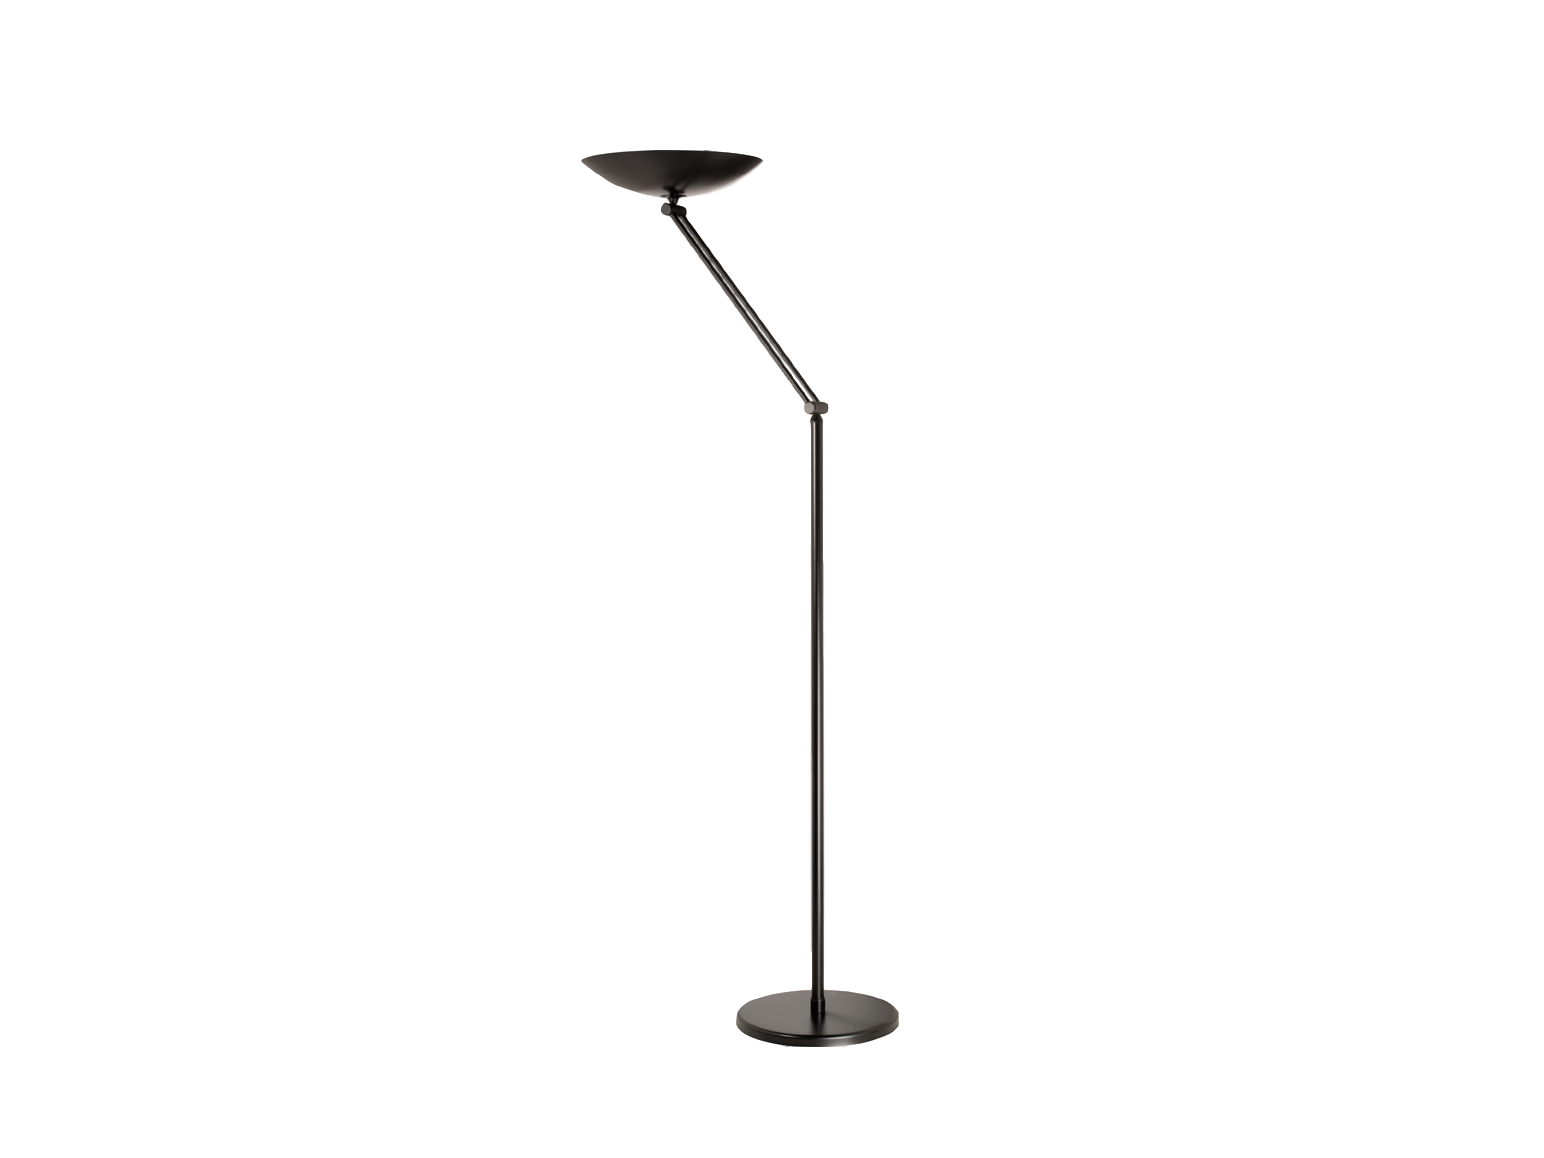 castorama lampadaire lampadaire de jardin castorama fastoche luabri de jardin castorama with. Black Bedroom Furniture Sets. Home Design Ideas